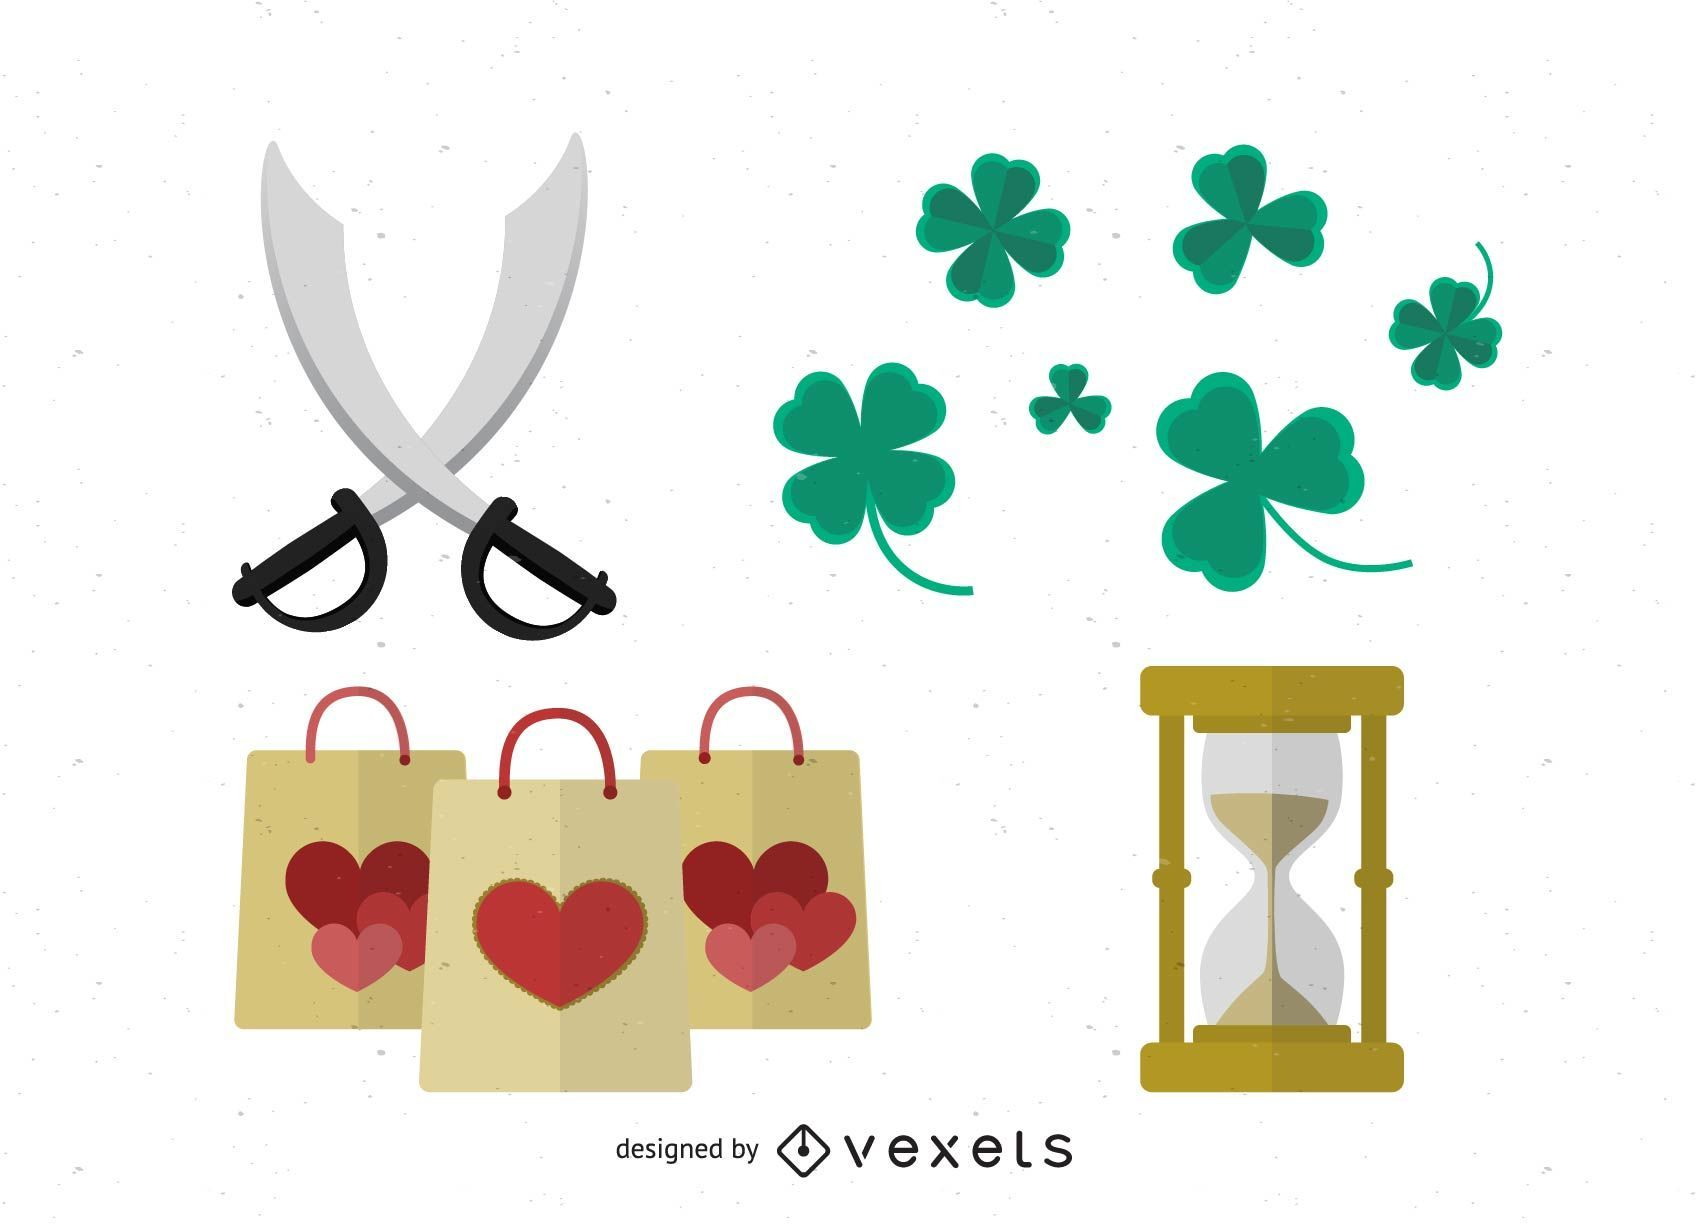 Heart shopping bags and clovers vector